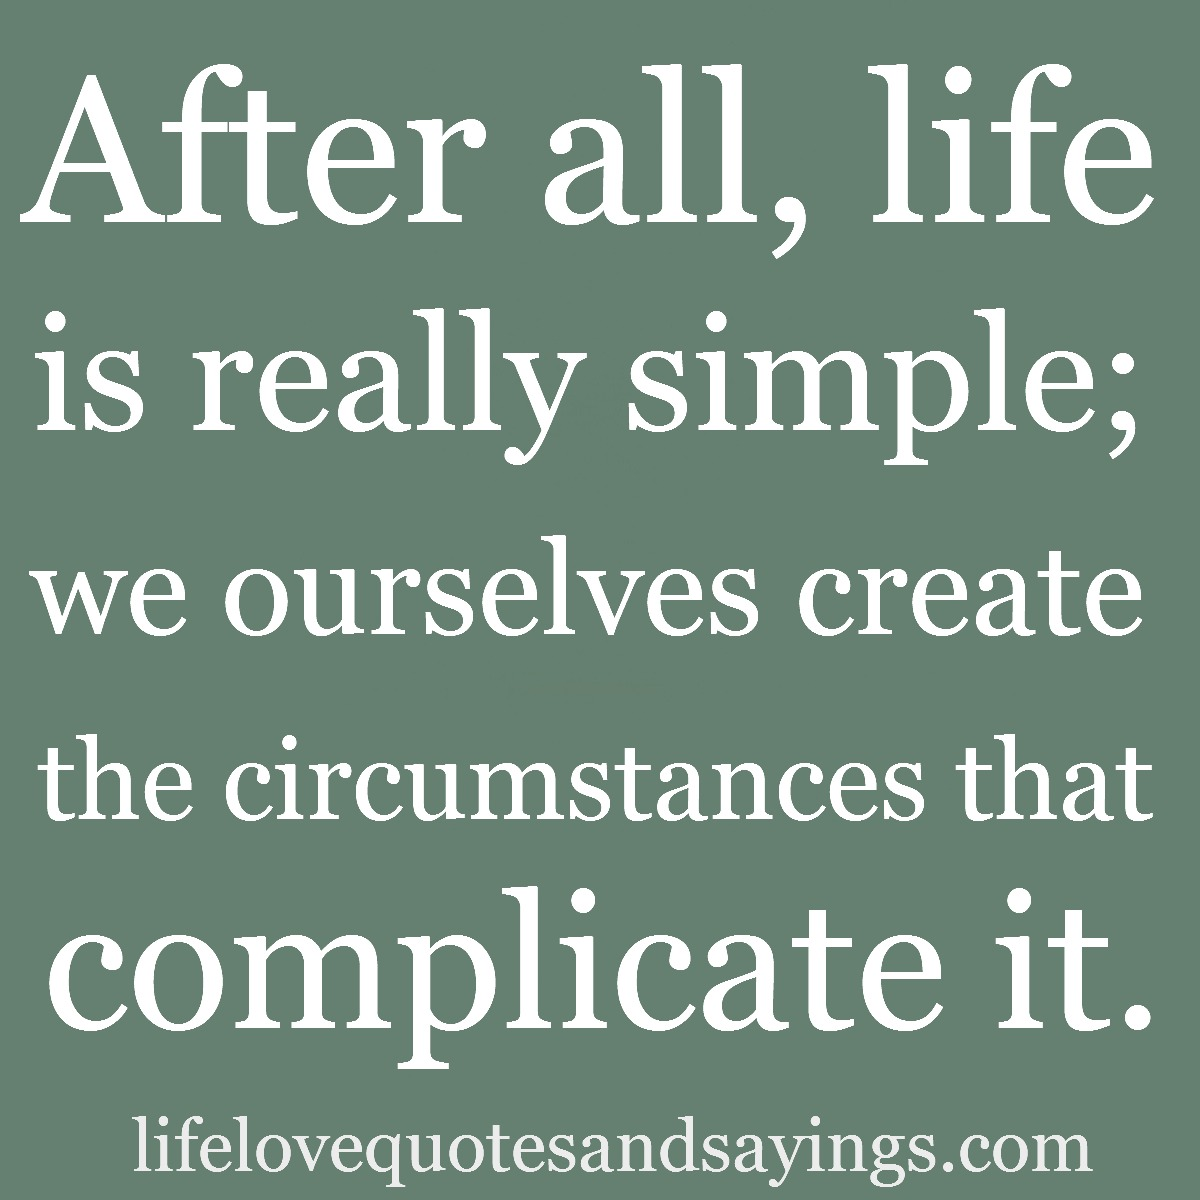 Famous Spiritual Quotes About Life: Simplicity Quotes And Sayings. QuotesGram